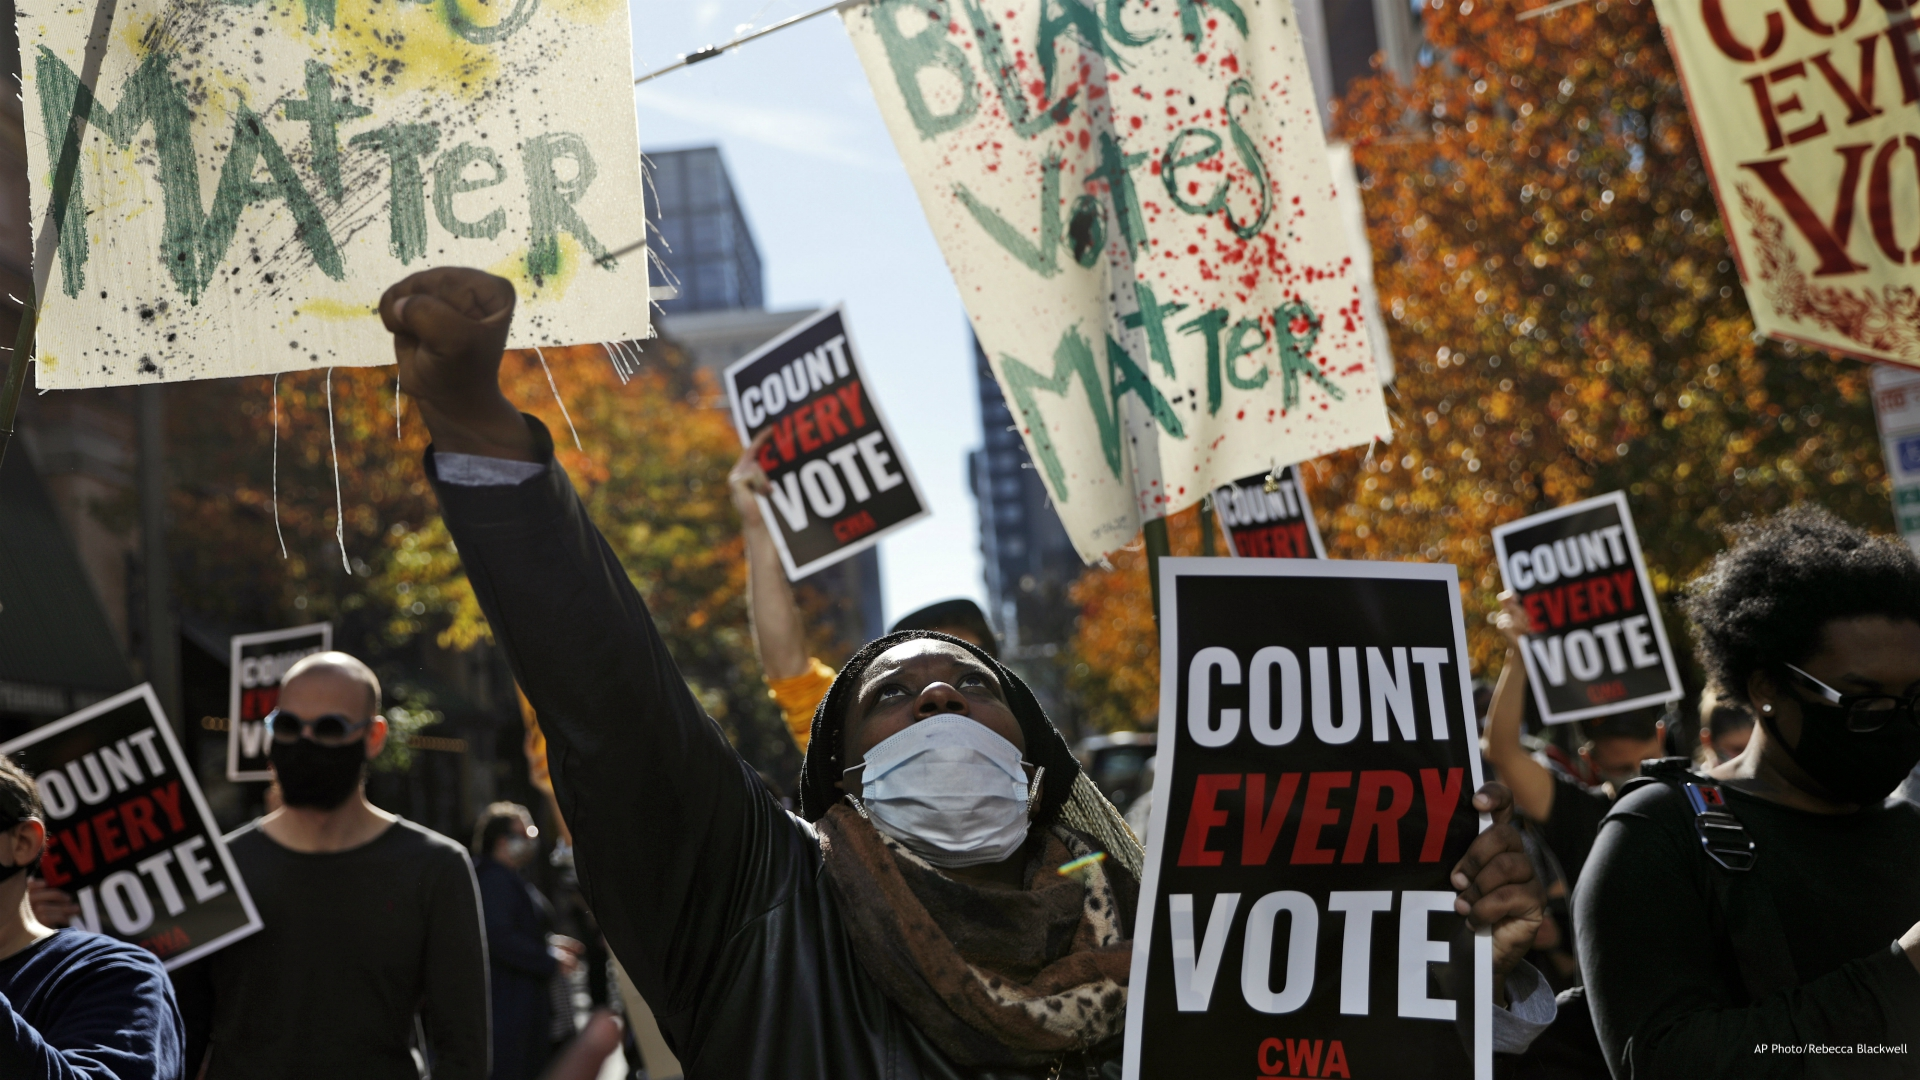 In this Nov. 5, 2020, file photo, Zhanon Morales, 30, of Philadelphia, raises her fist as demonstrators call for all votes be counted during a rally outside the Pennsylvania Convention Center in Philadelphia, as vote counting in the general election continues. A tough road lies ahead for Biden who will need to chart a path forward to unite a bitterly divided nation and address America's fraught history of racism that manifested this year through the convergence of three national crises. (AP Photo/Rebecca Blackwell, File)